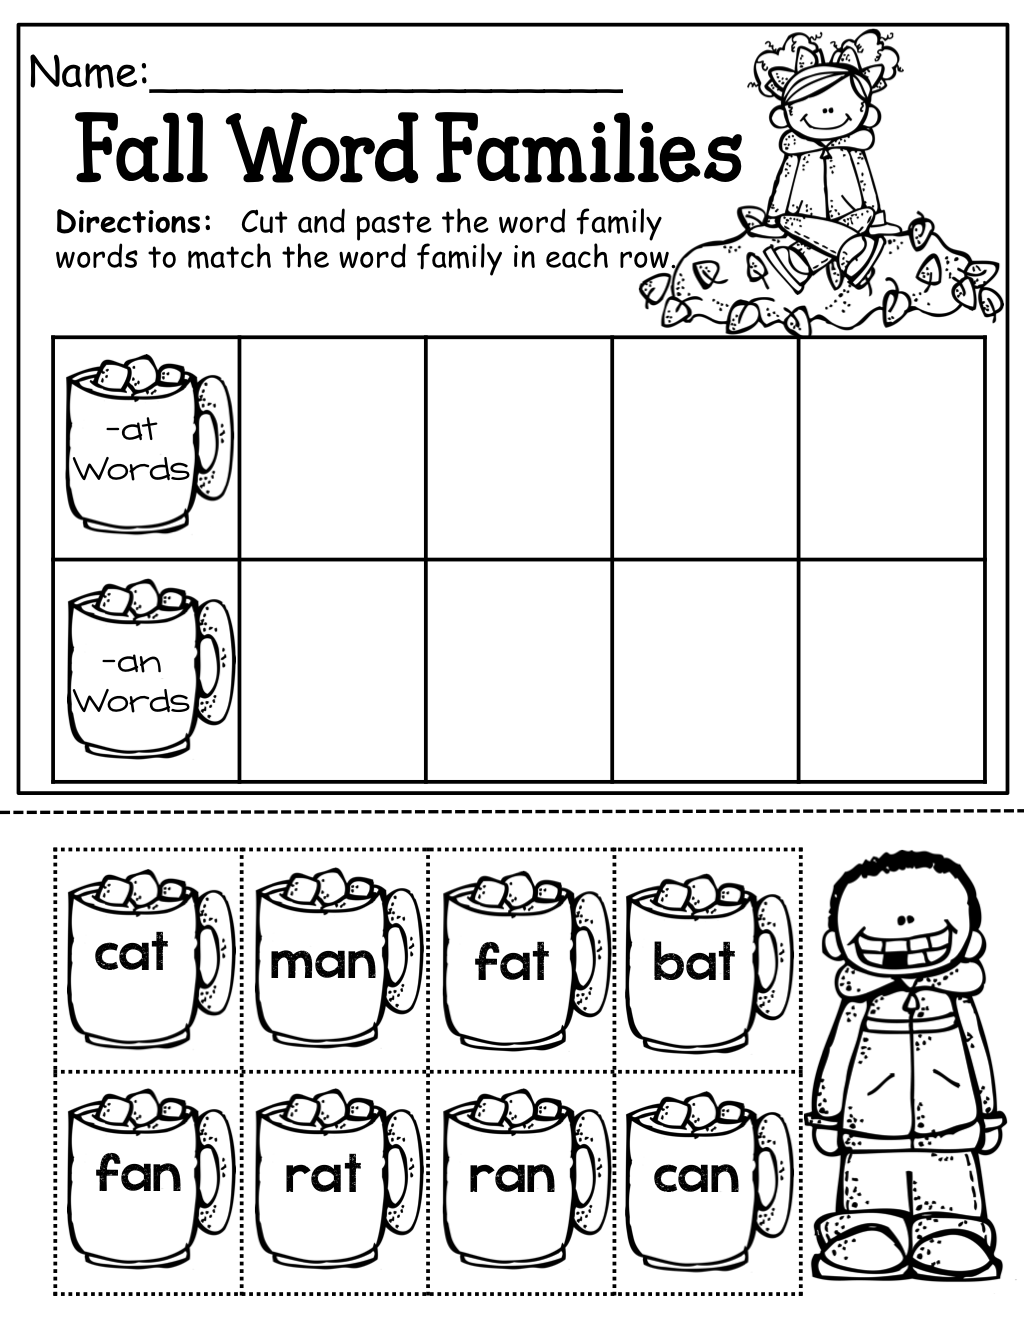 At And An Family Word Sort Tons Of Fall Printables Word Families Cvc Words Word Sorts [ 1325 x 1024 Pixel ]